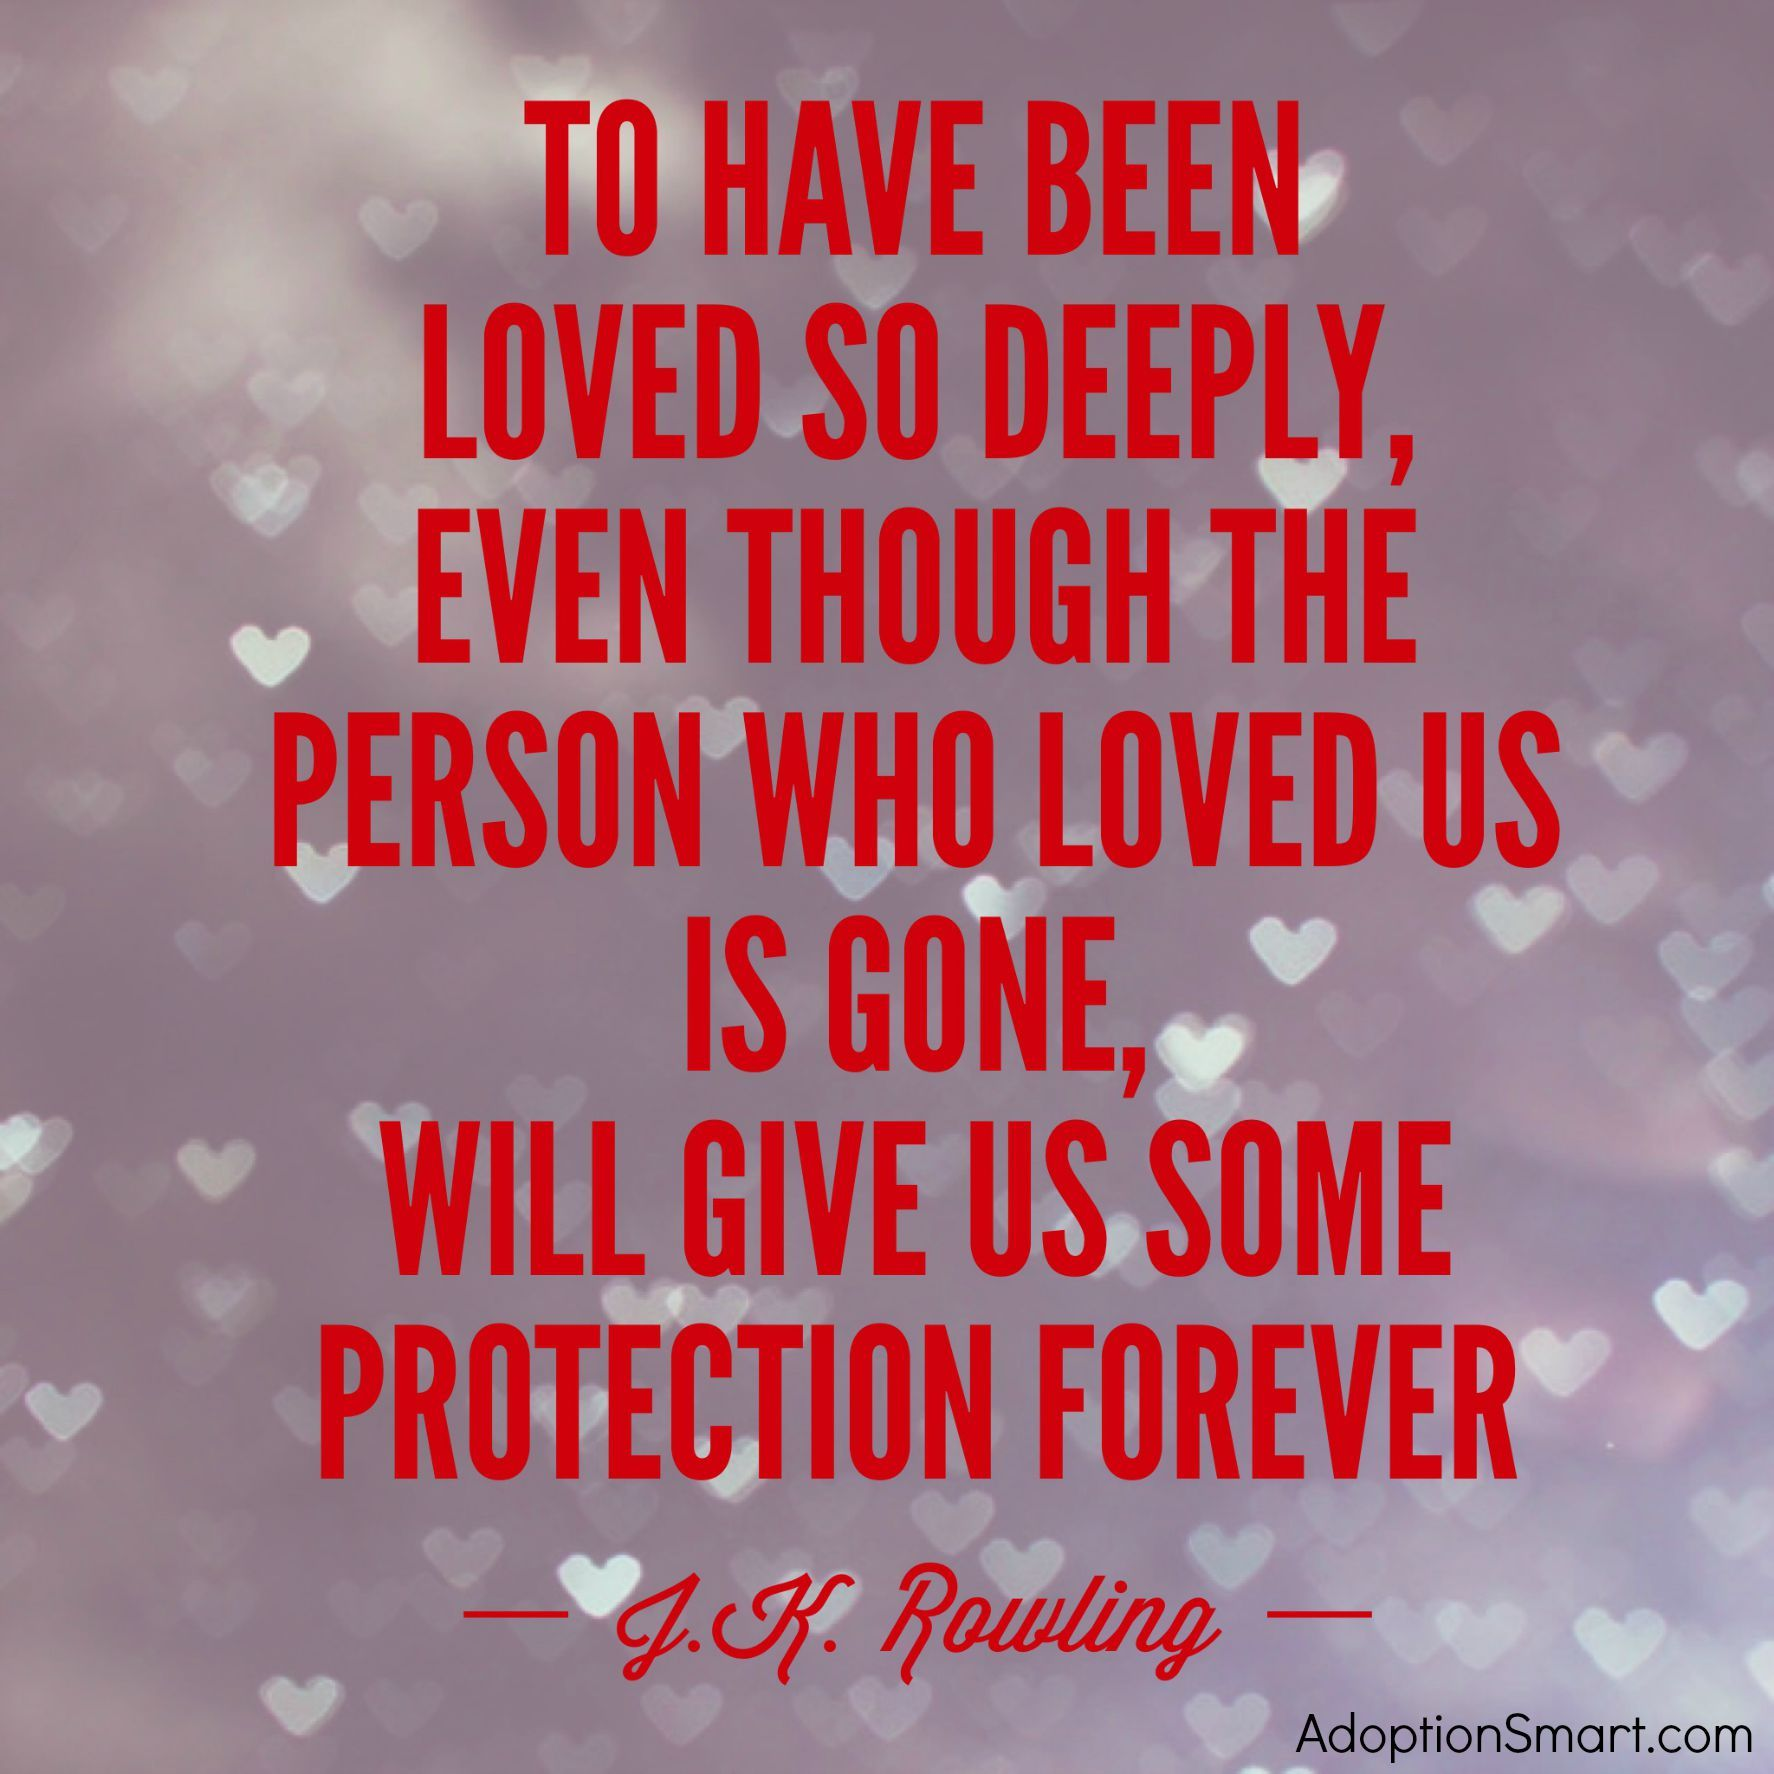 Adoption Quotes To Have Been Loved So Deeply Even Though The Person Who Loved Us